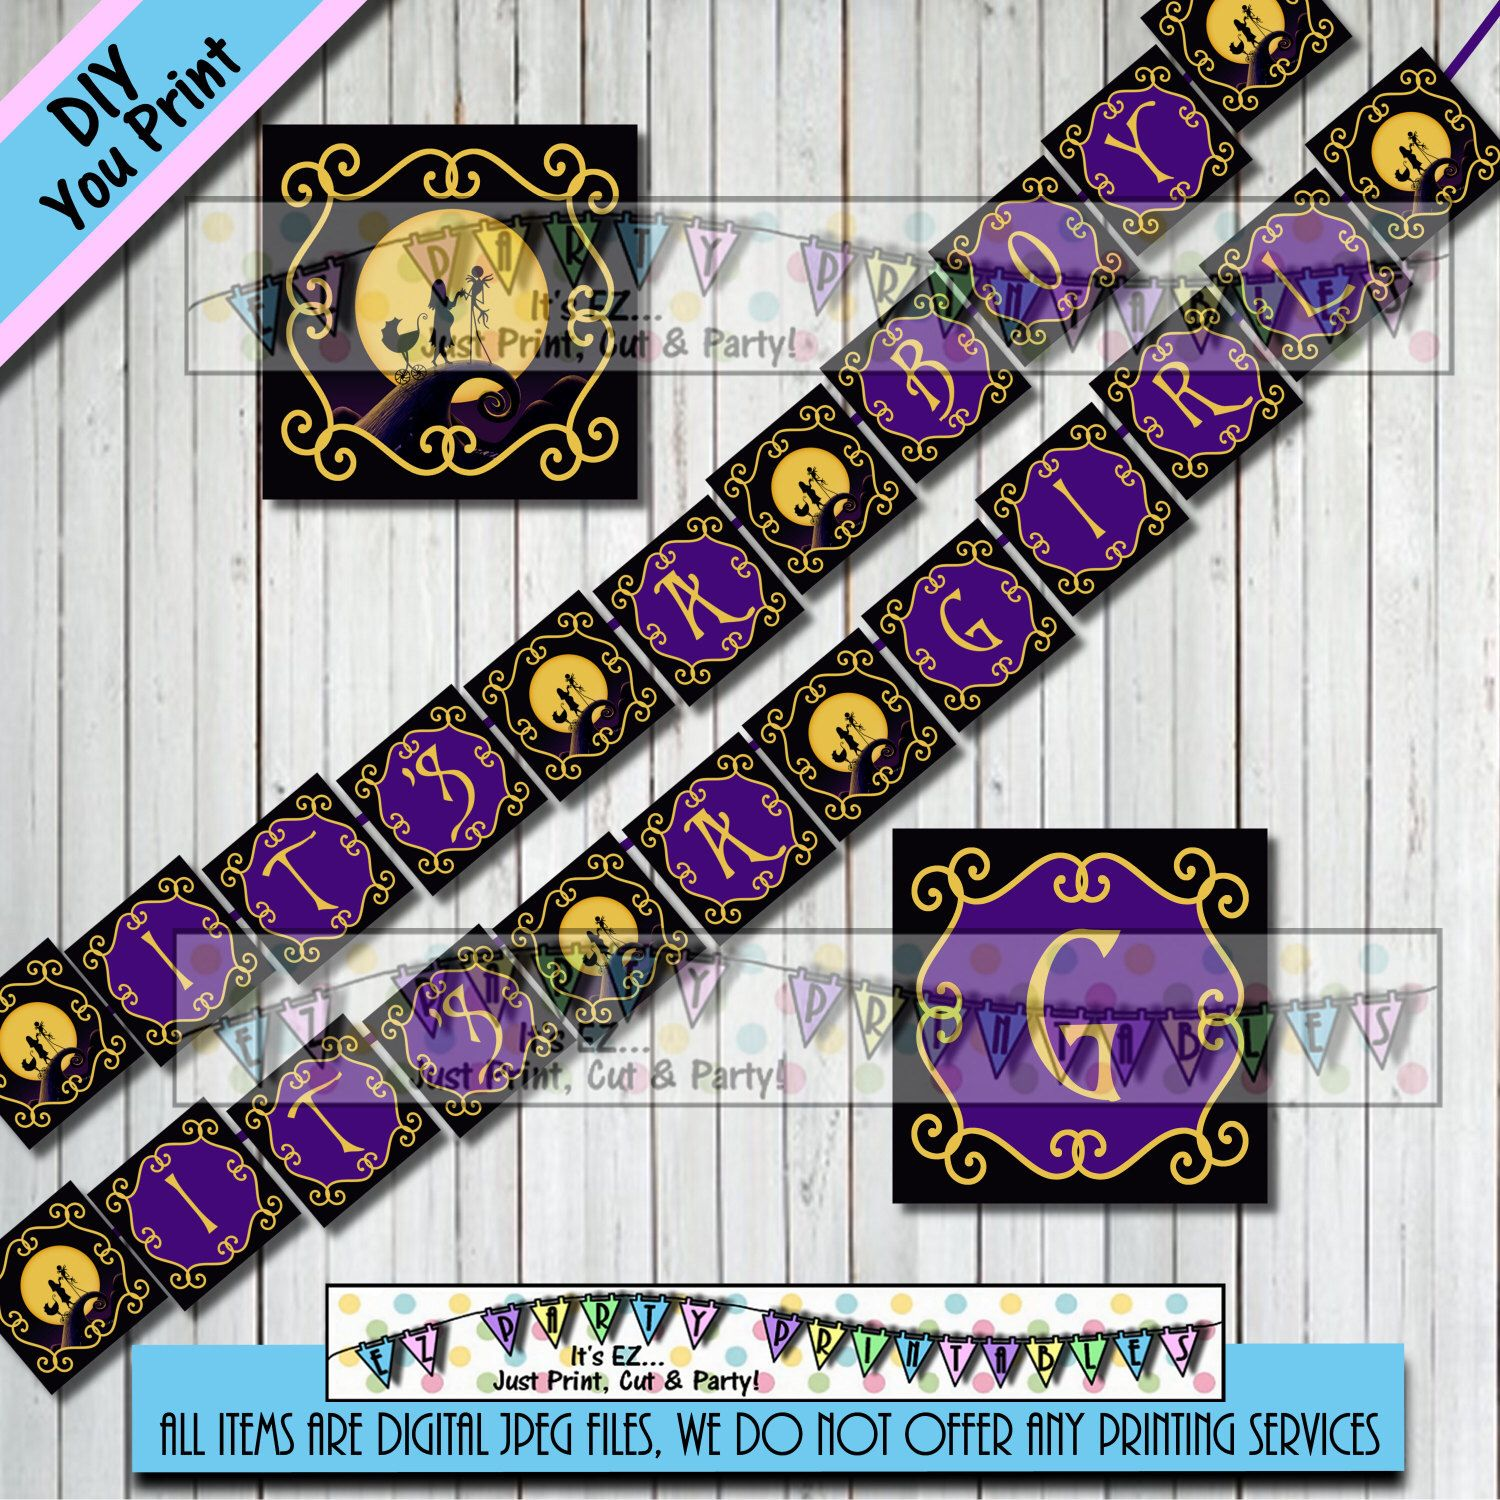 nightmare before christmas baby shower banner girl boy banner halloween birthday party other party supplies sold - Baby Halloween Birthday Party